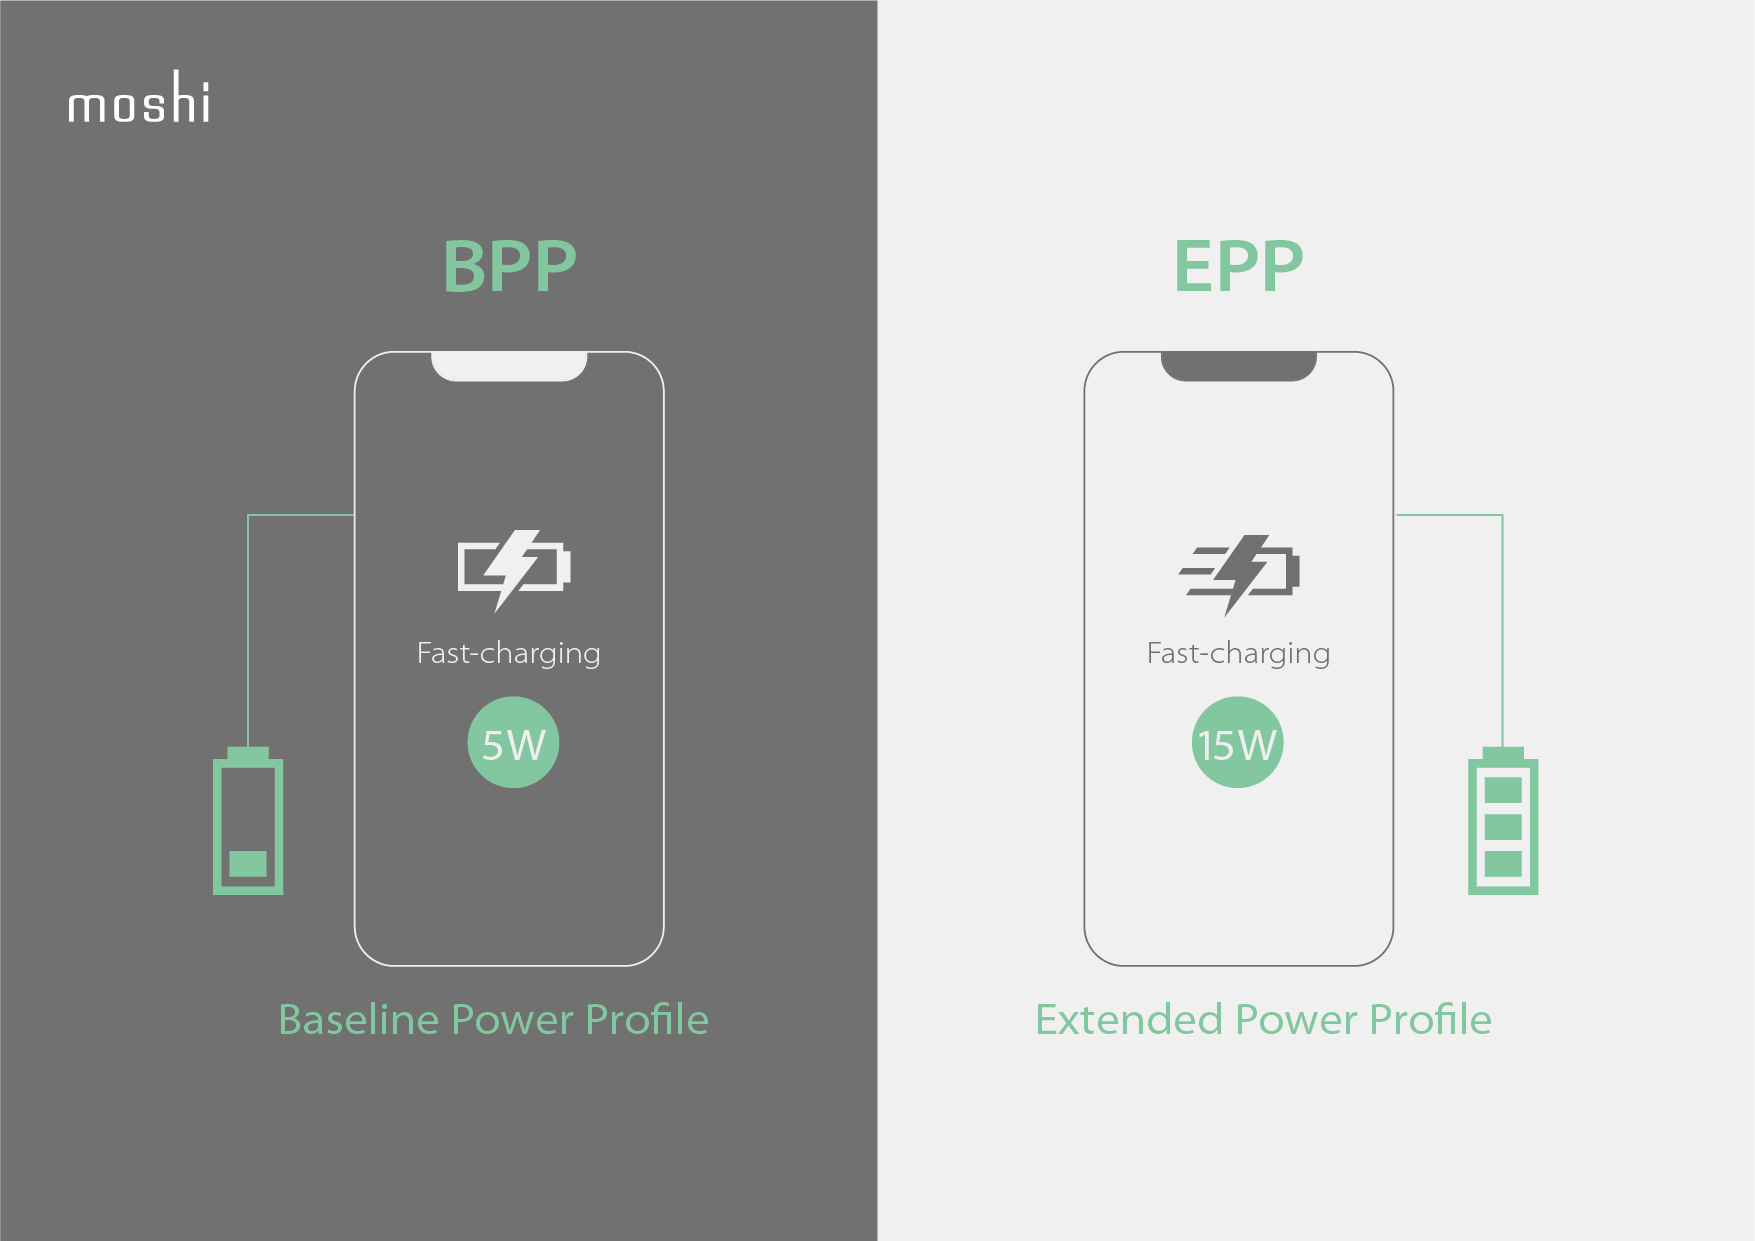 Illustration of the difference between Qi BPP and EPP